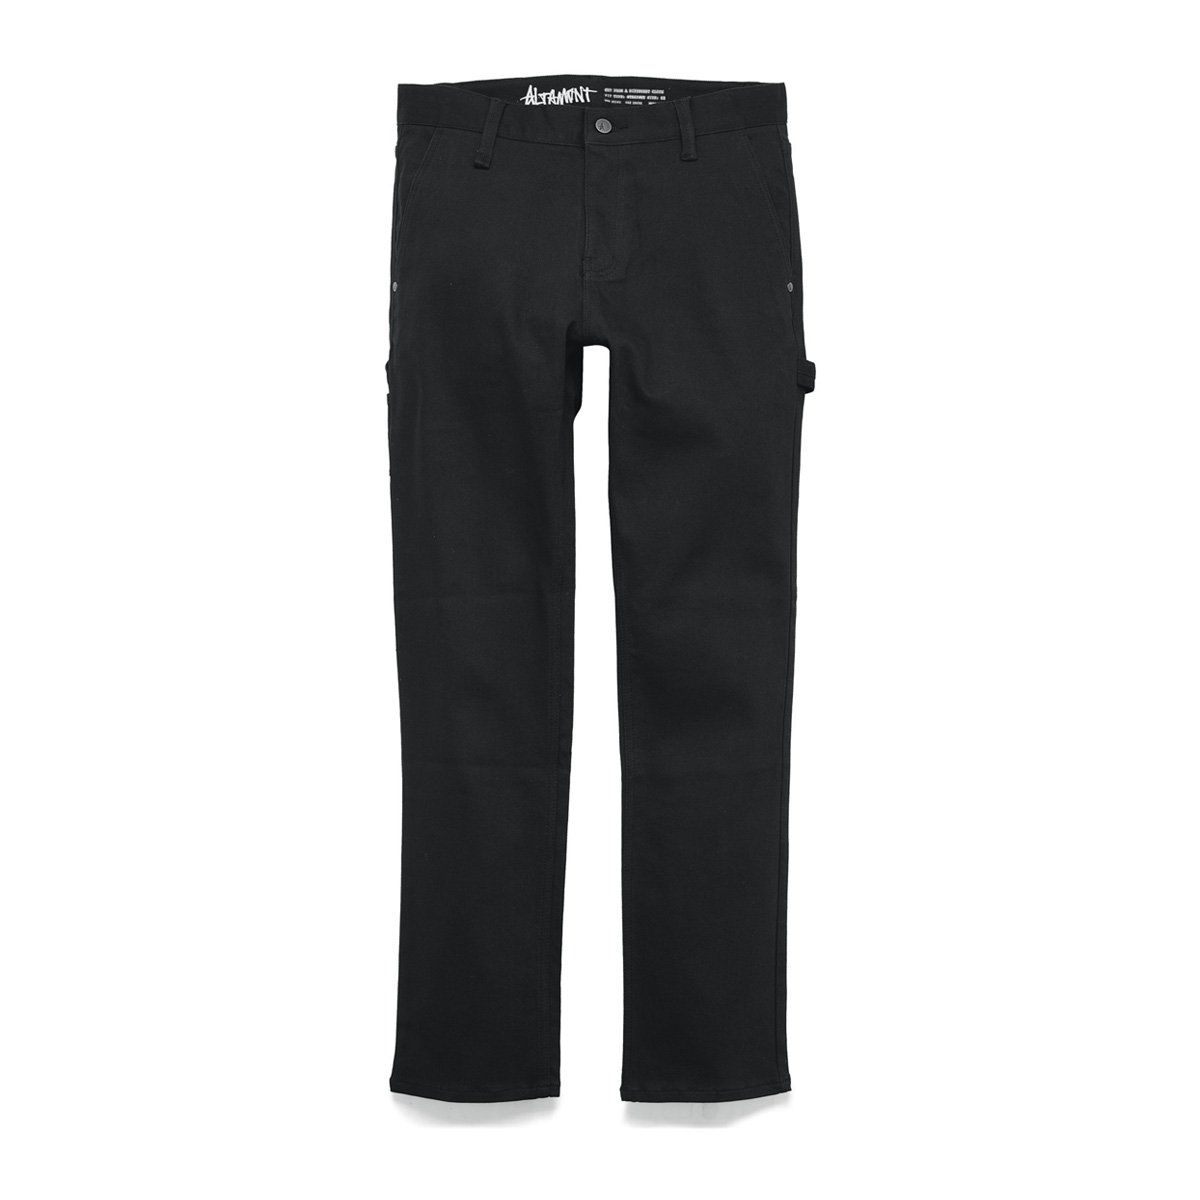 REYNOLDS WORKPANT